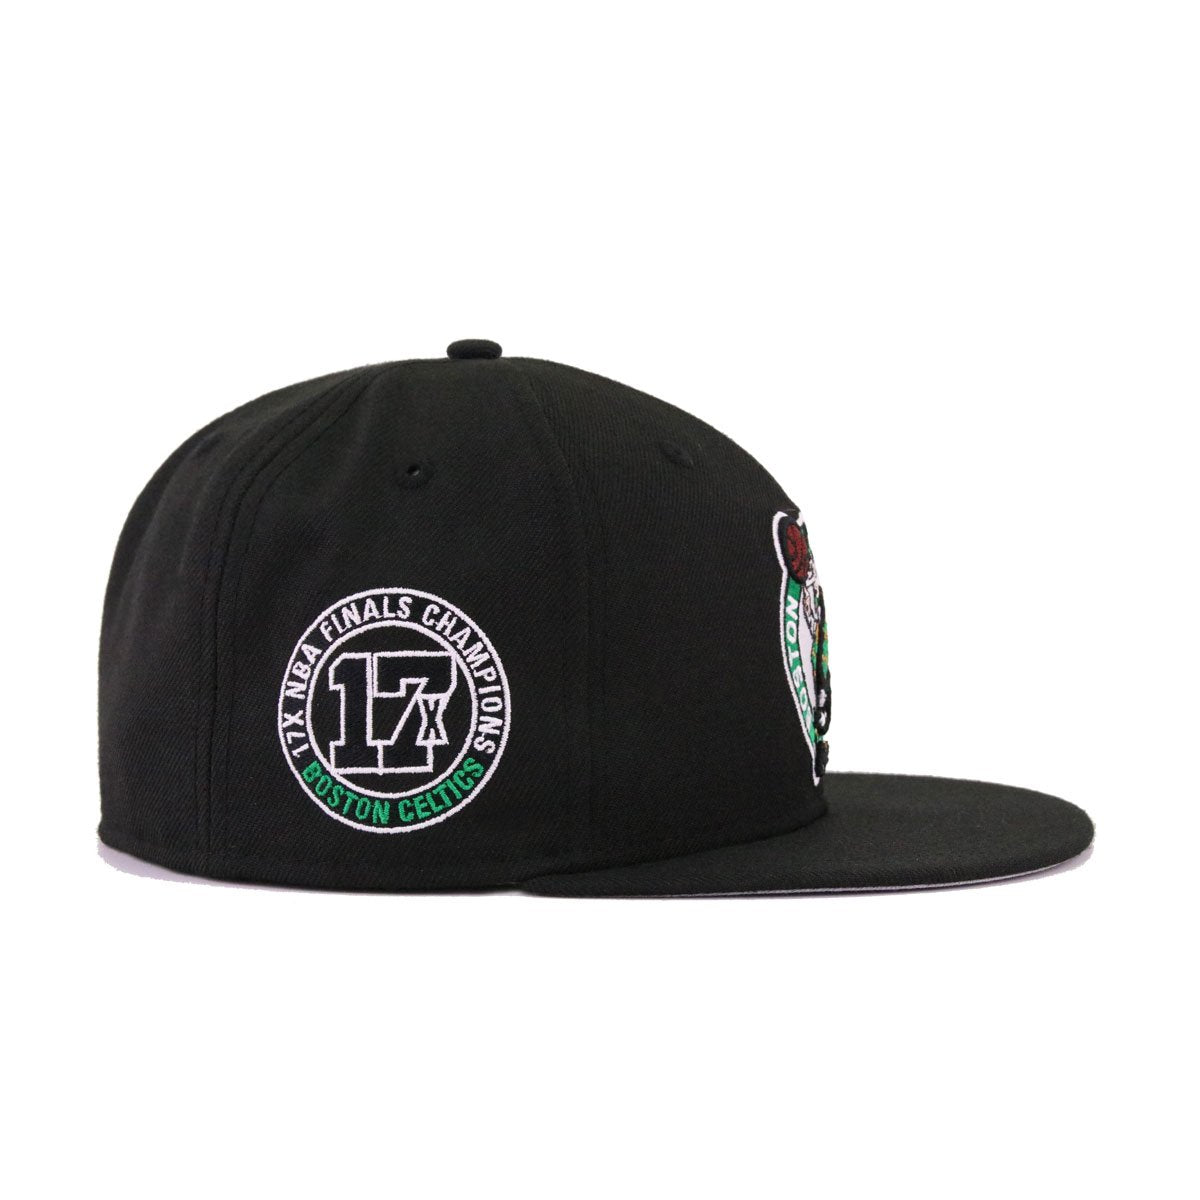 Boston Celtics Black Kelly Green 17x Champions New Era 59Fifty Fitted